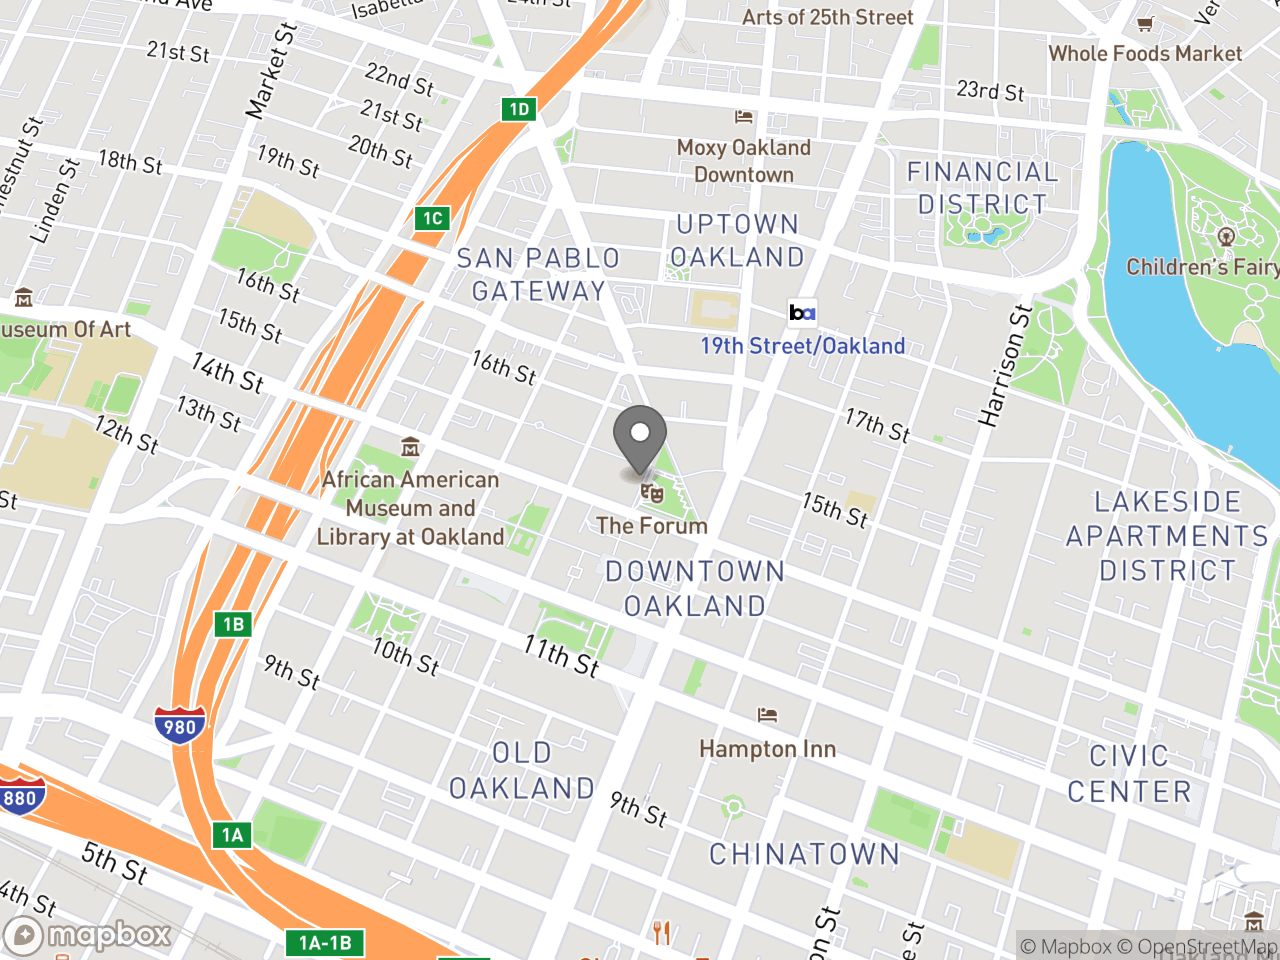 Map location for November 7, 2018 Planning Commission Meeting, located at 1 Frank H Ogawa Plaza in Oakland, CA 94612